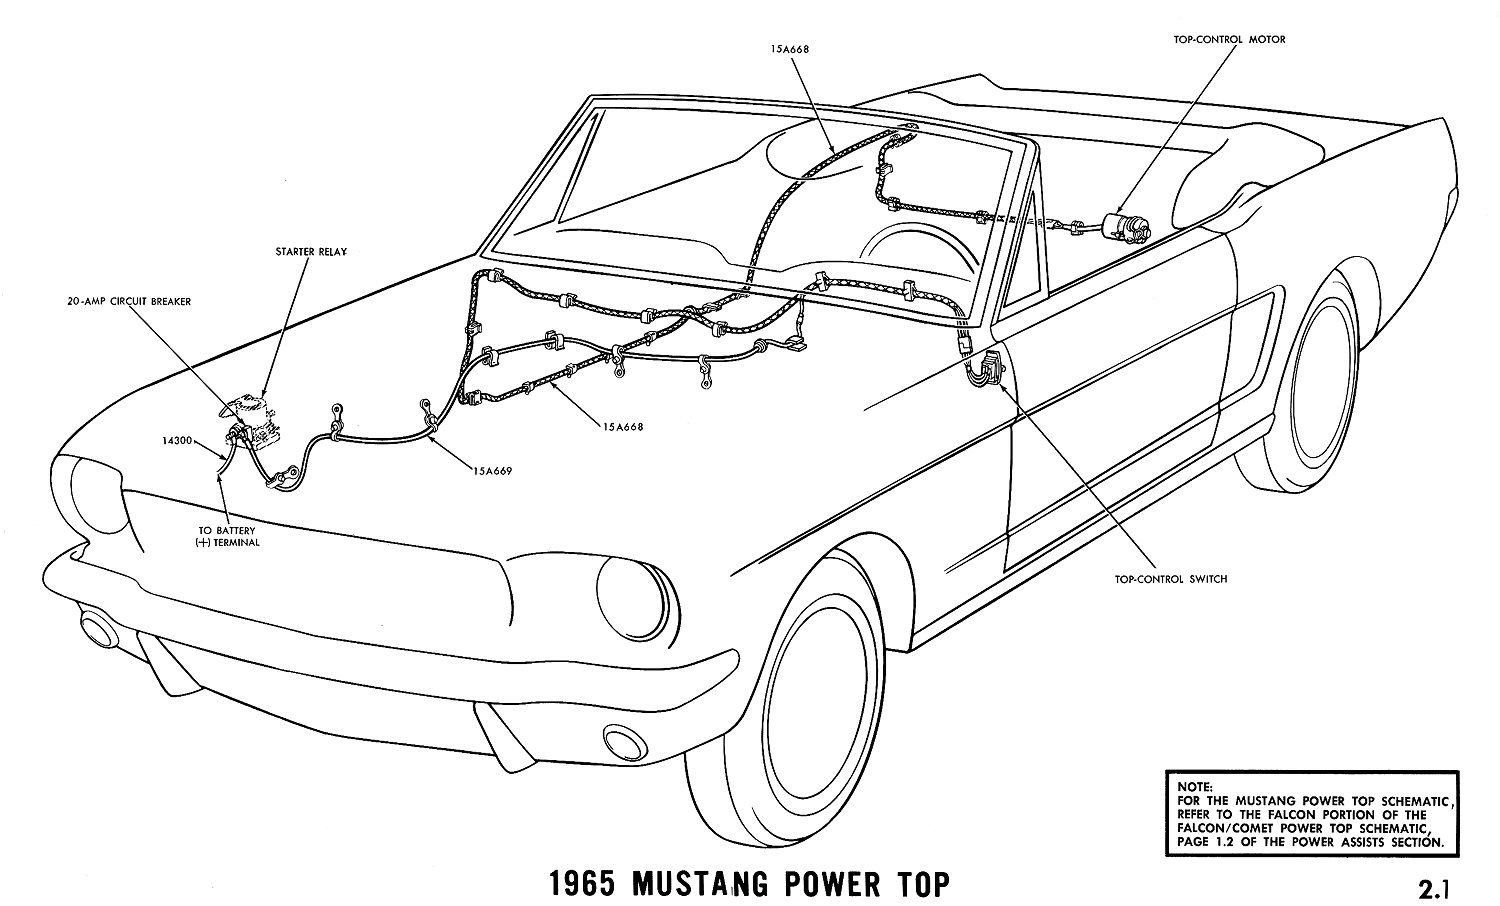 Phenomenal 1965 Mustang Wiring Diagrams Average Joe Restoration Wiring Cloud Philuggs Outletorg